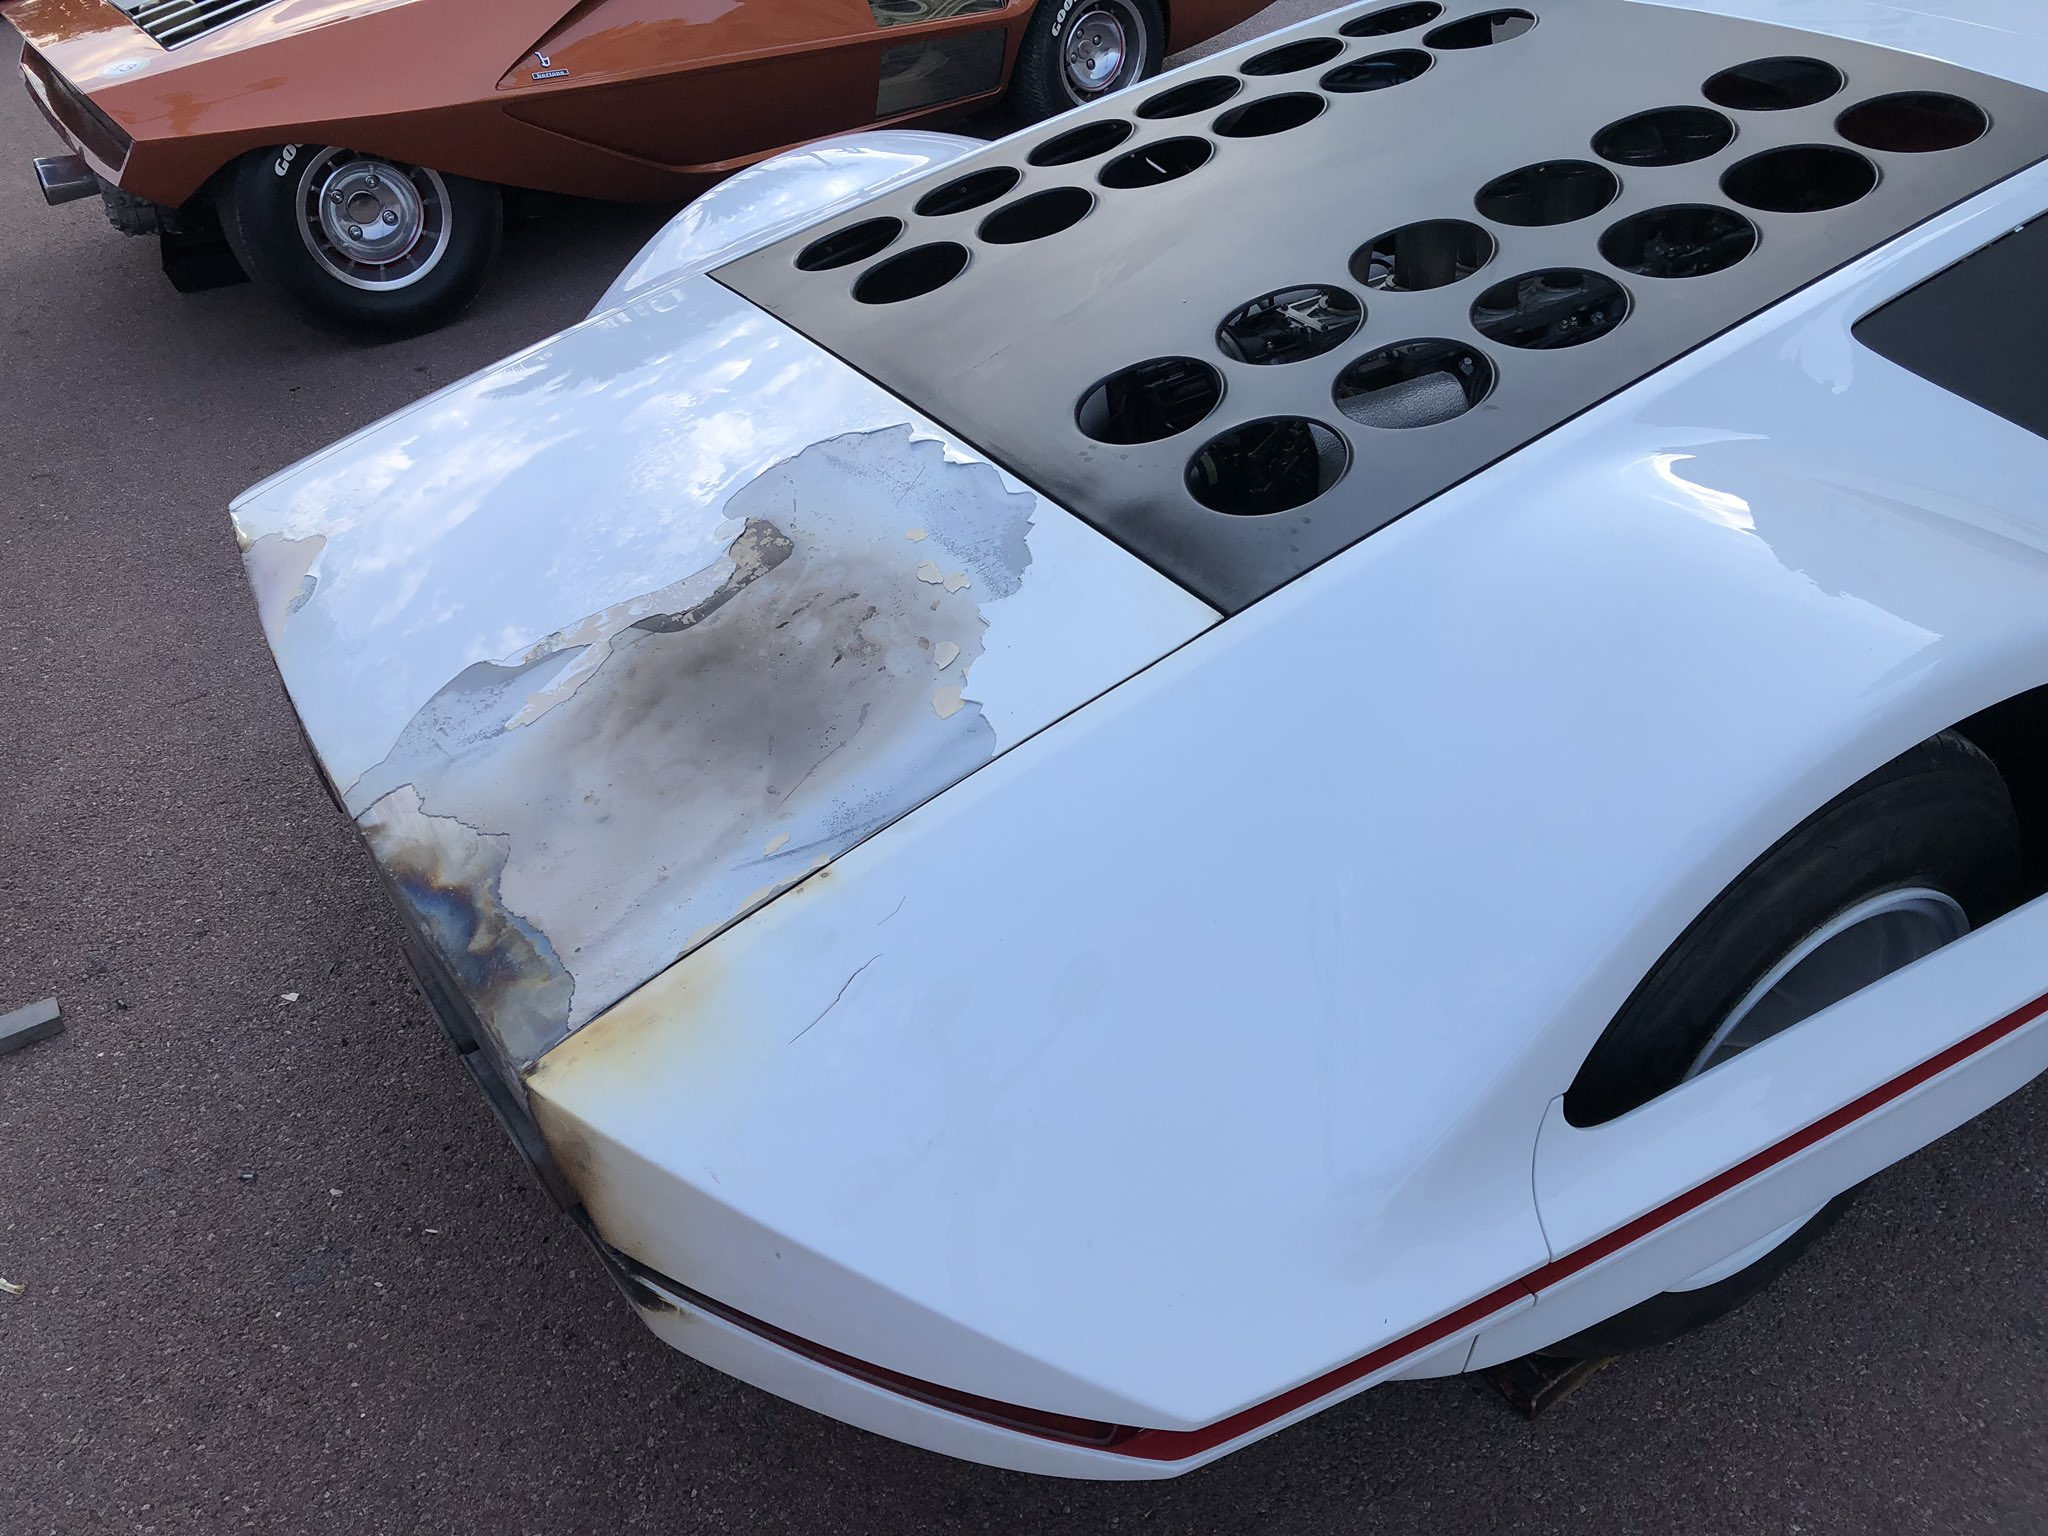 Ferrari Modulo fire damage